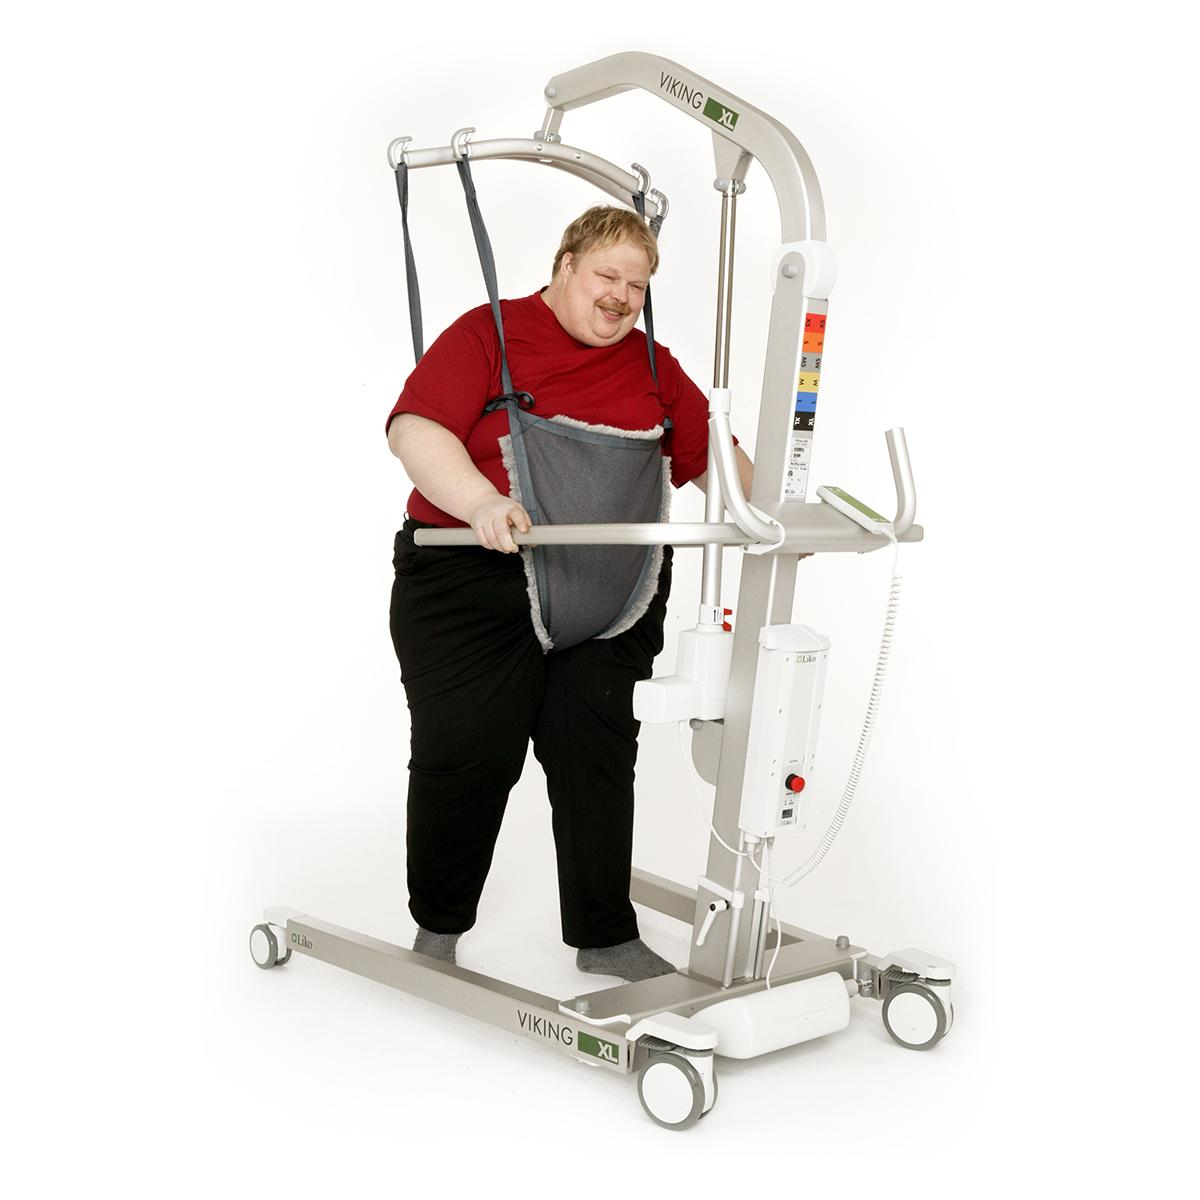 A patient is supported while walking with the Viking XL mobile lift